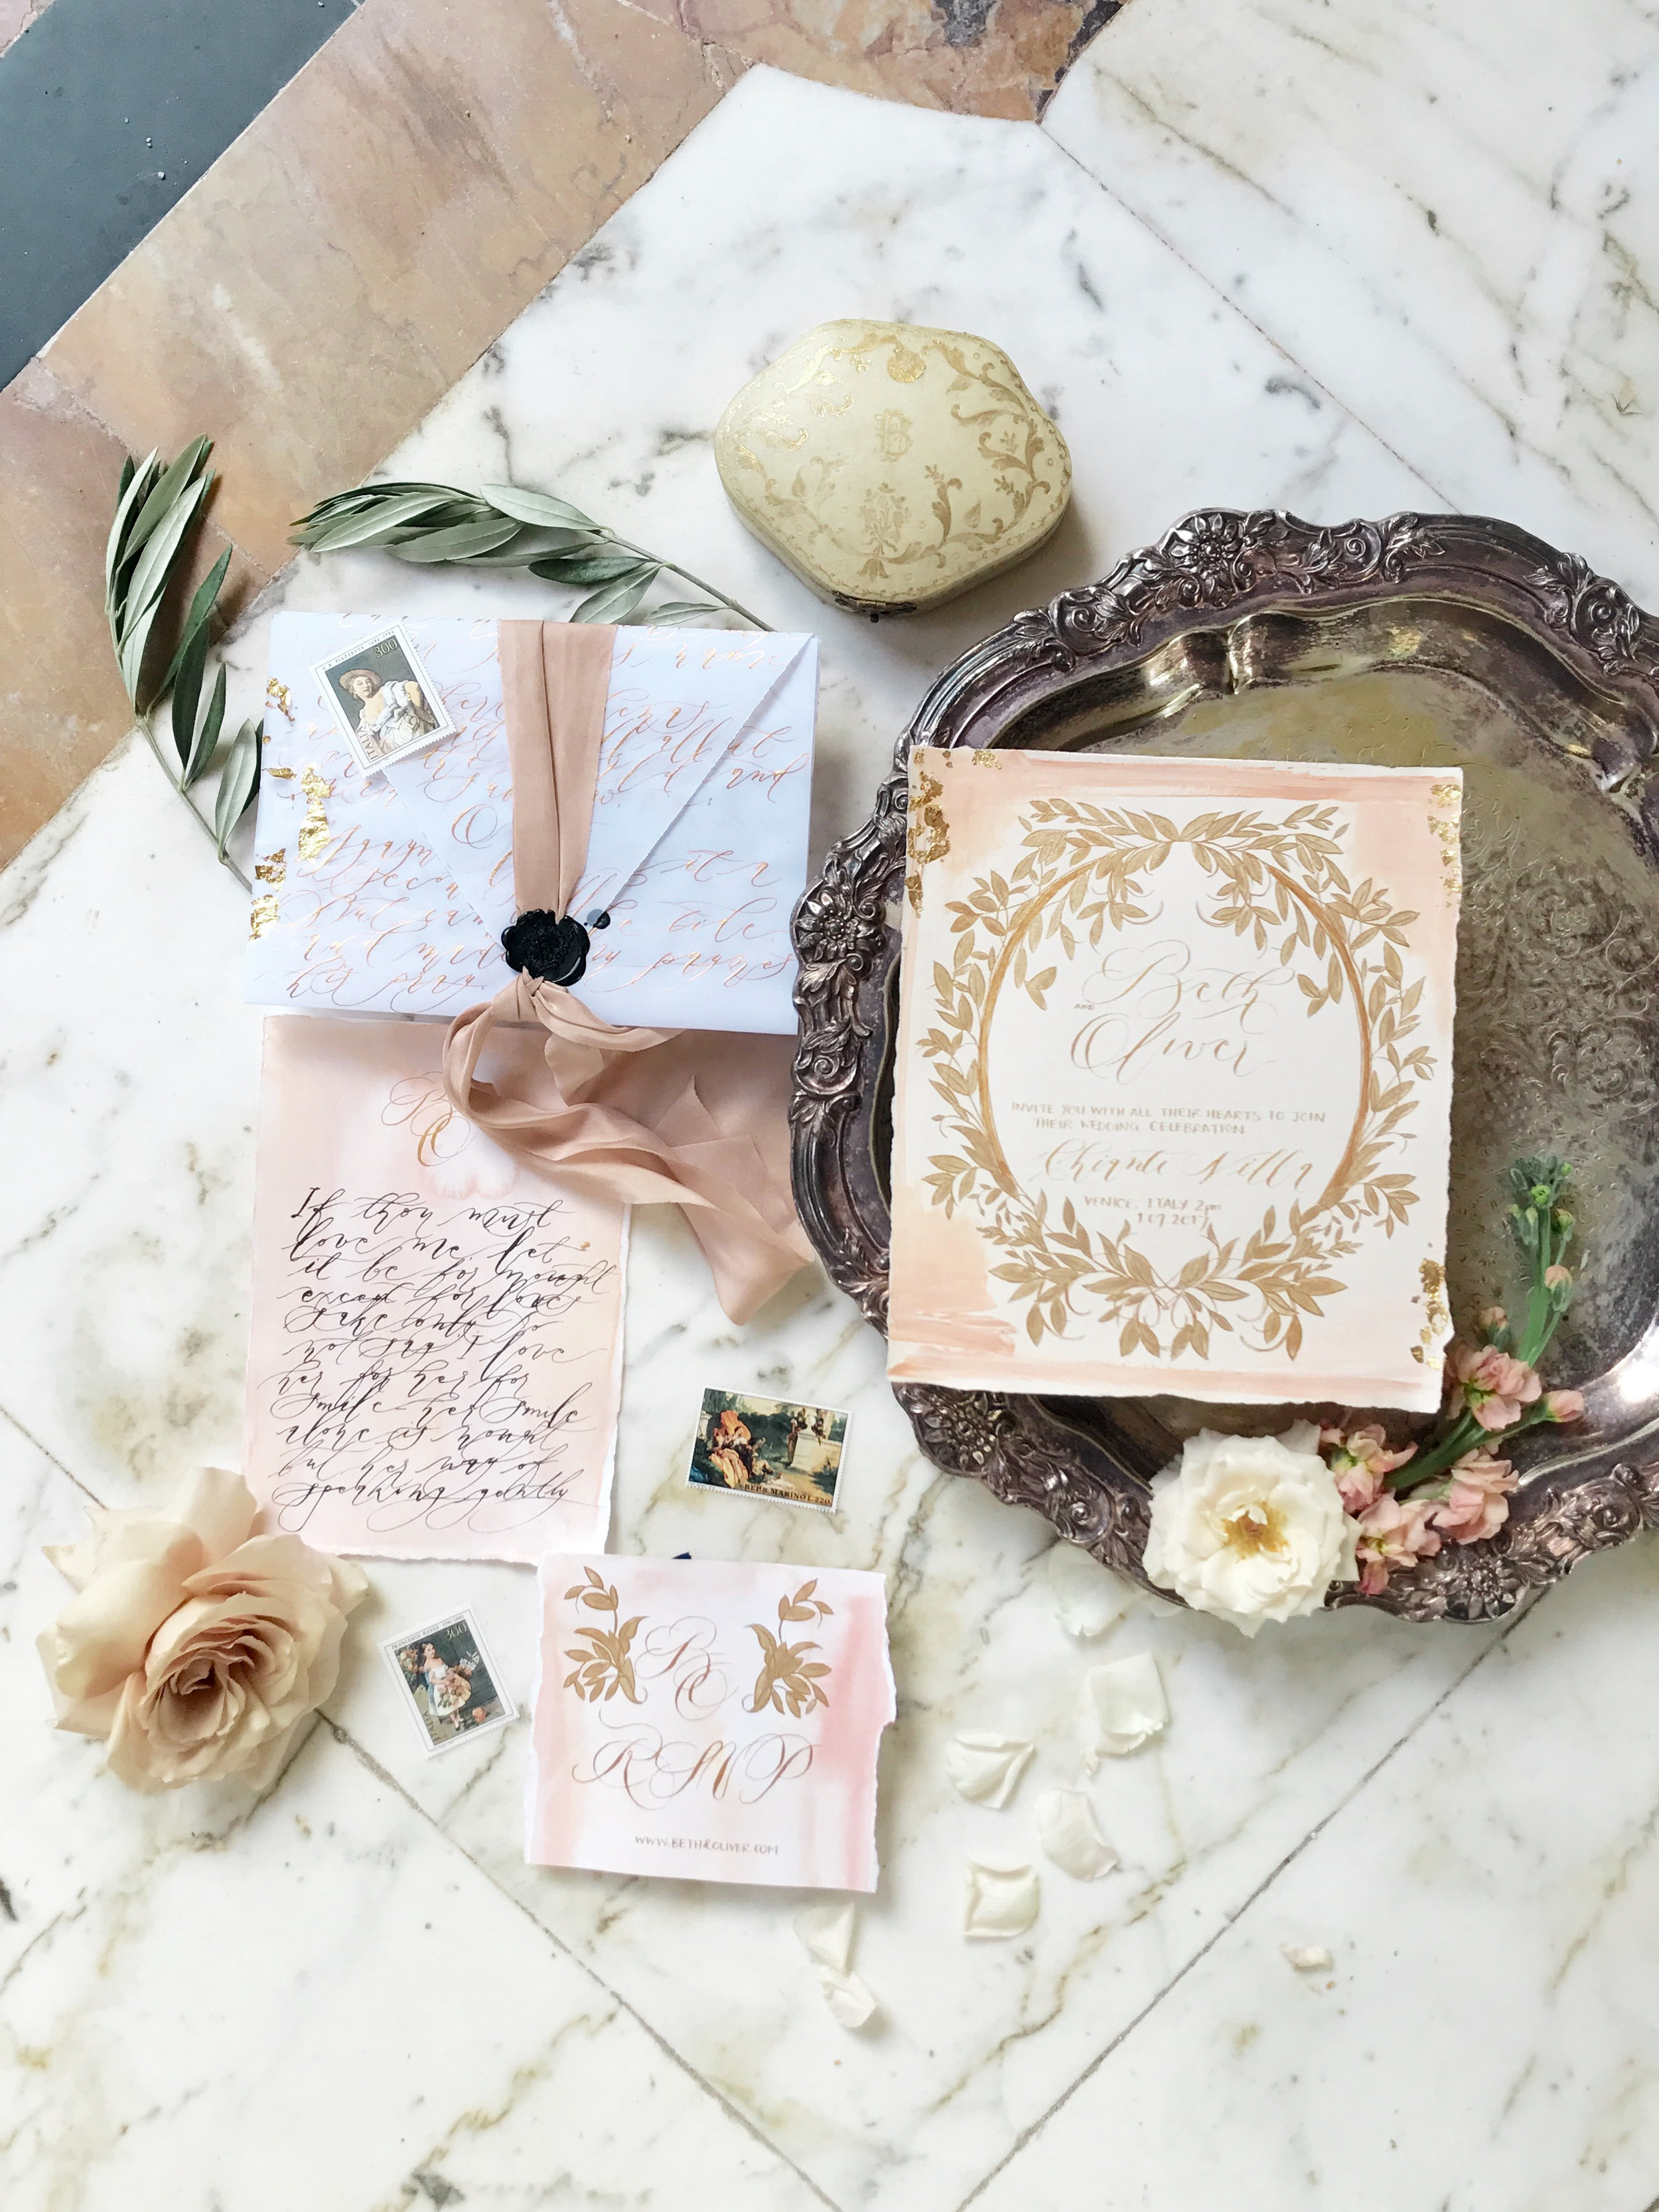 Wedding Stationery by Crimson Letters. Wedding Planner www.andreaeppolitoevents.com. Photo by Vizcay Koby Brown.